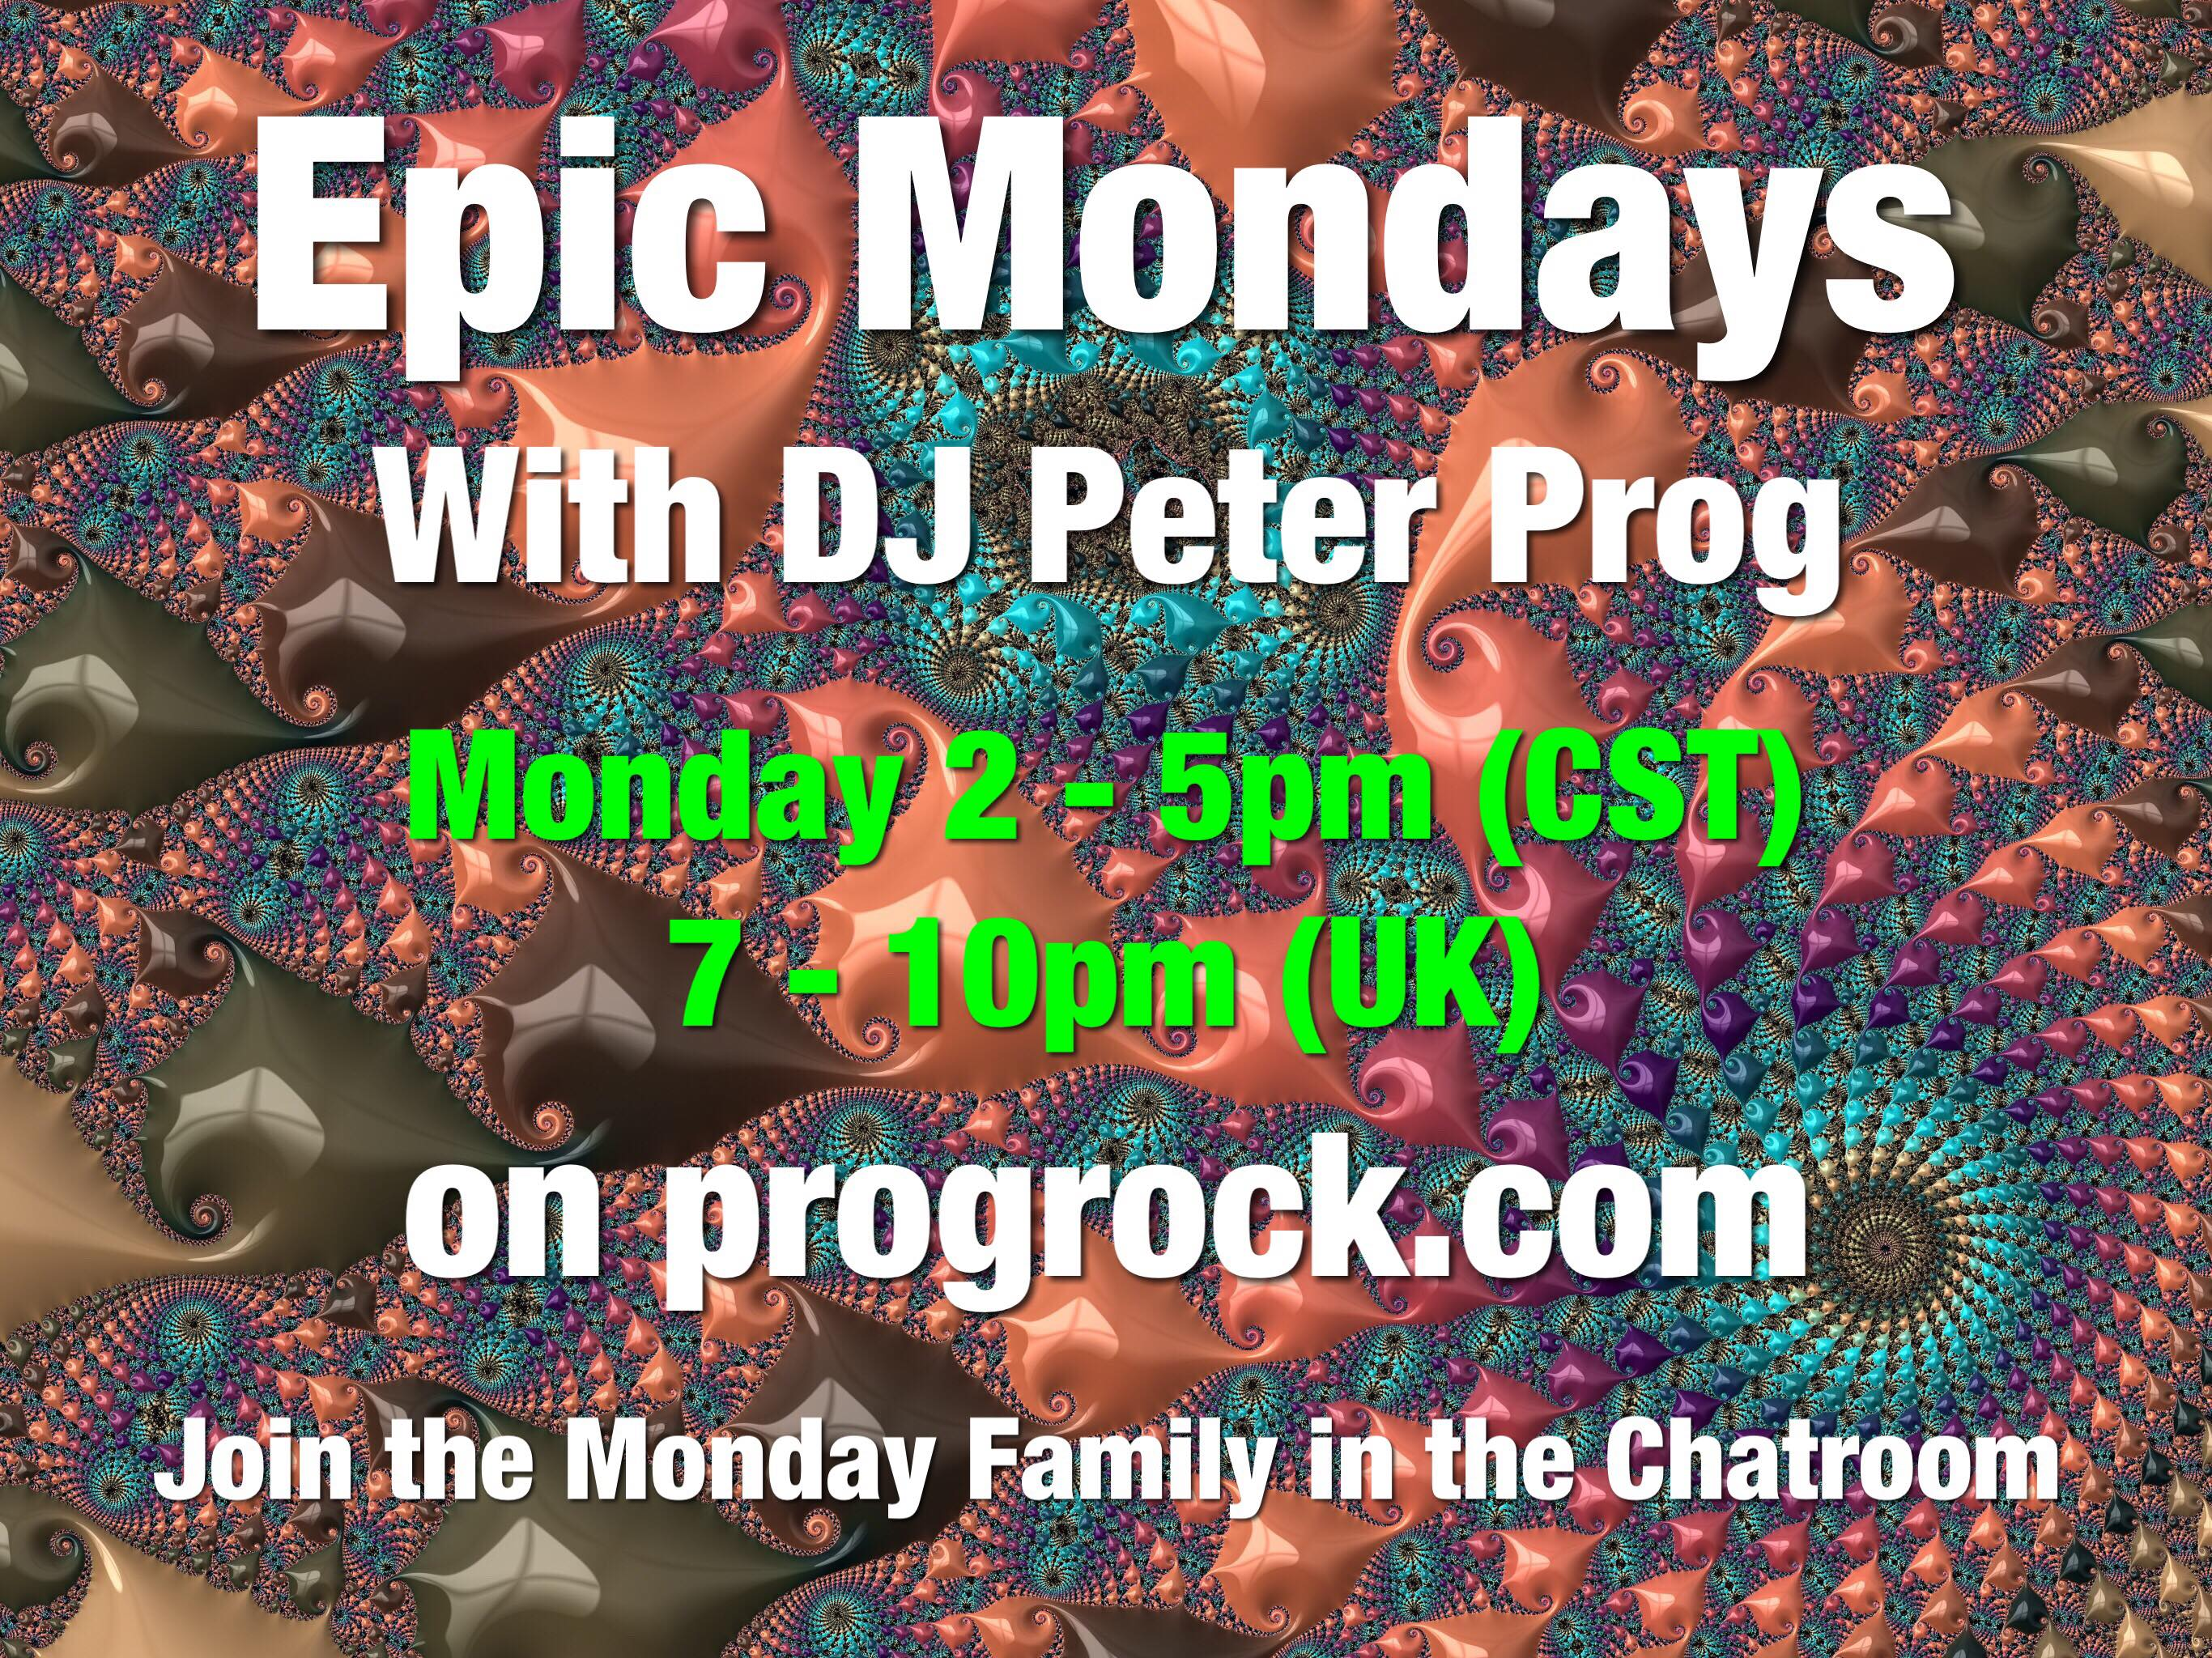 Epic Mondays hosted by DJ Peter Prog Monday 26 October 2020